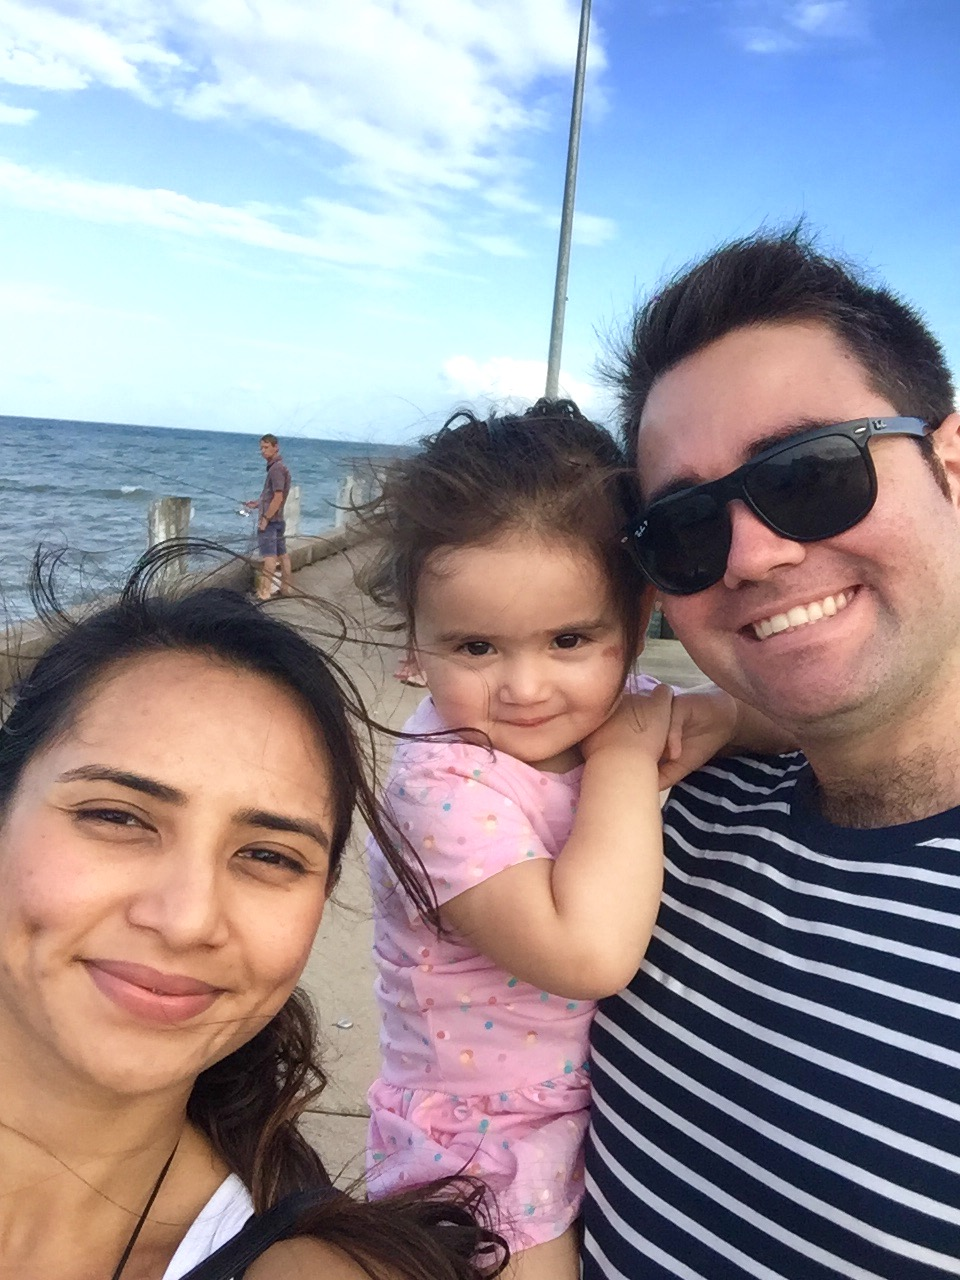 Lydia Lopes enjoying time with her family on the pier.